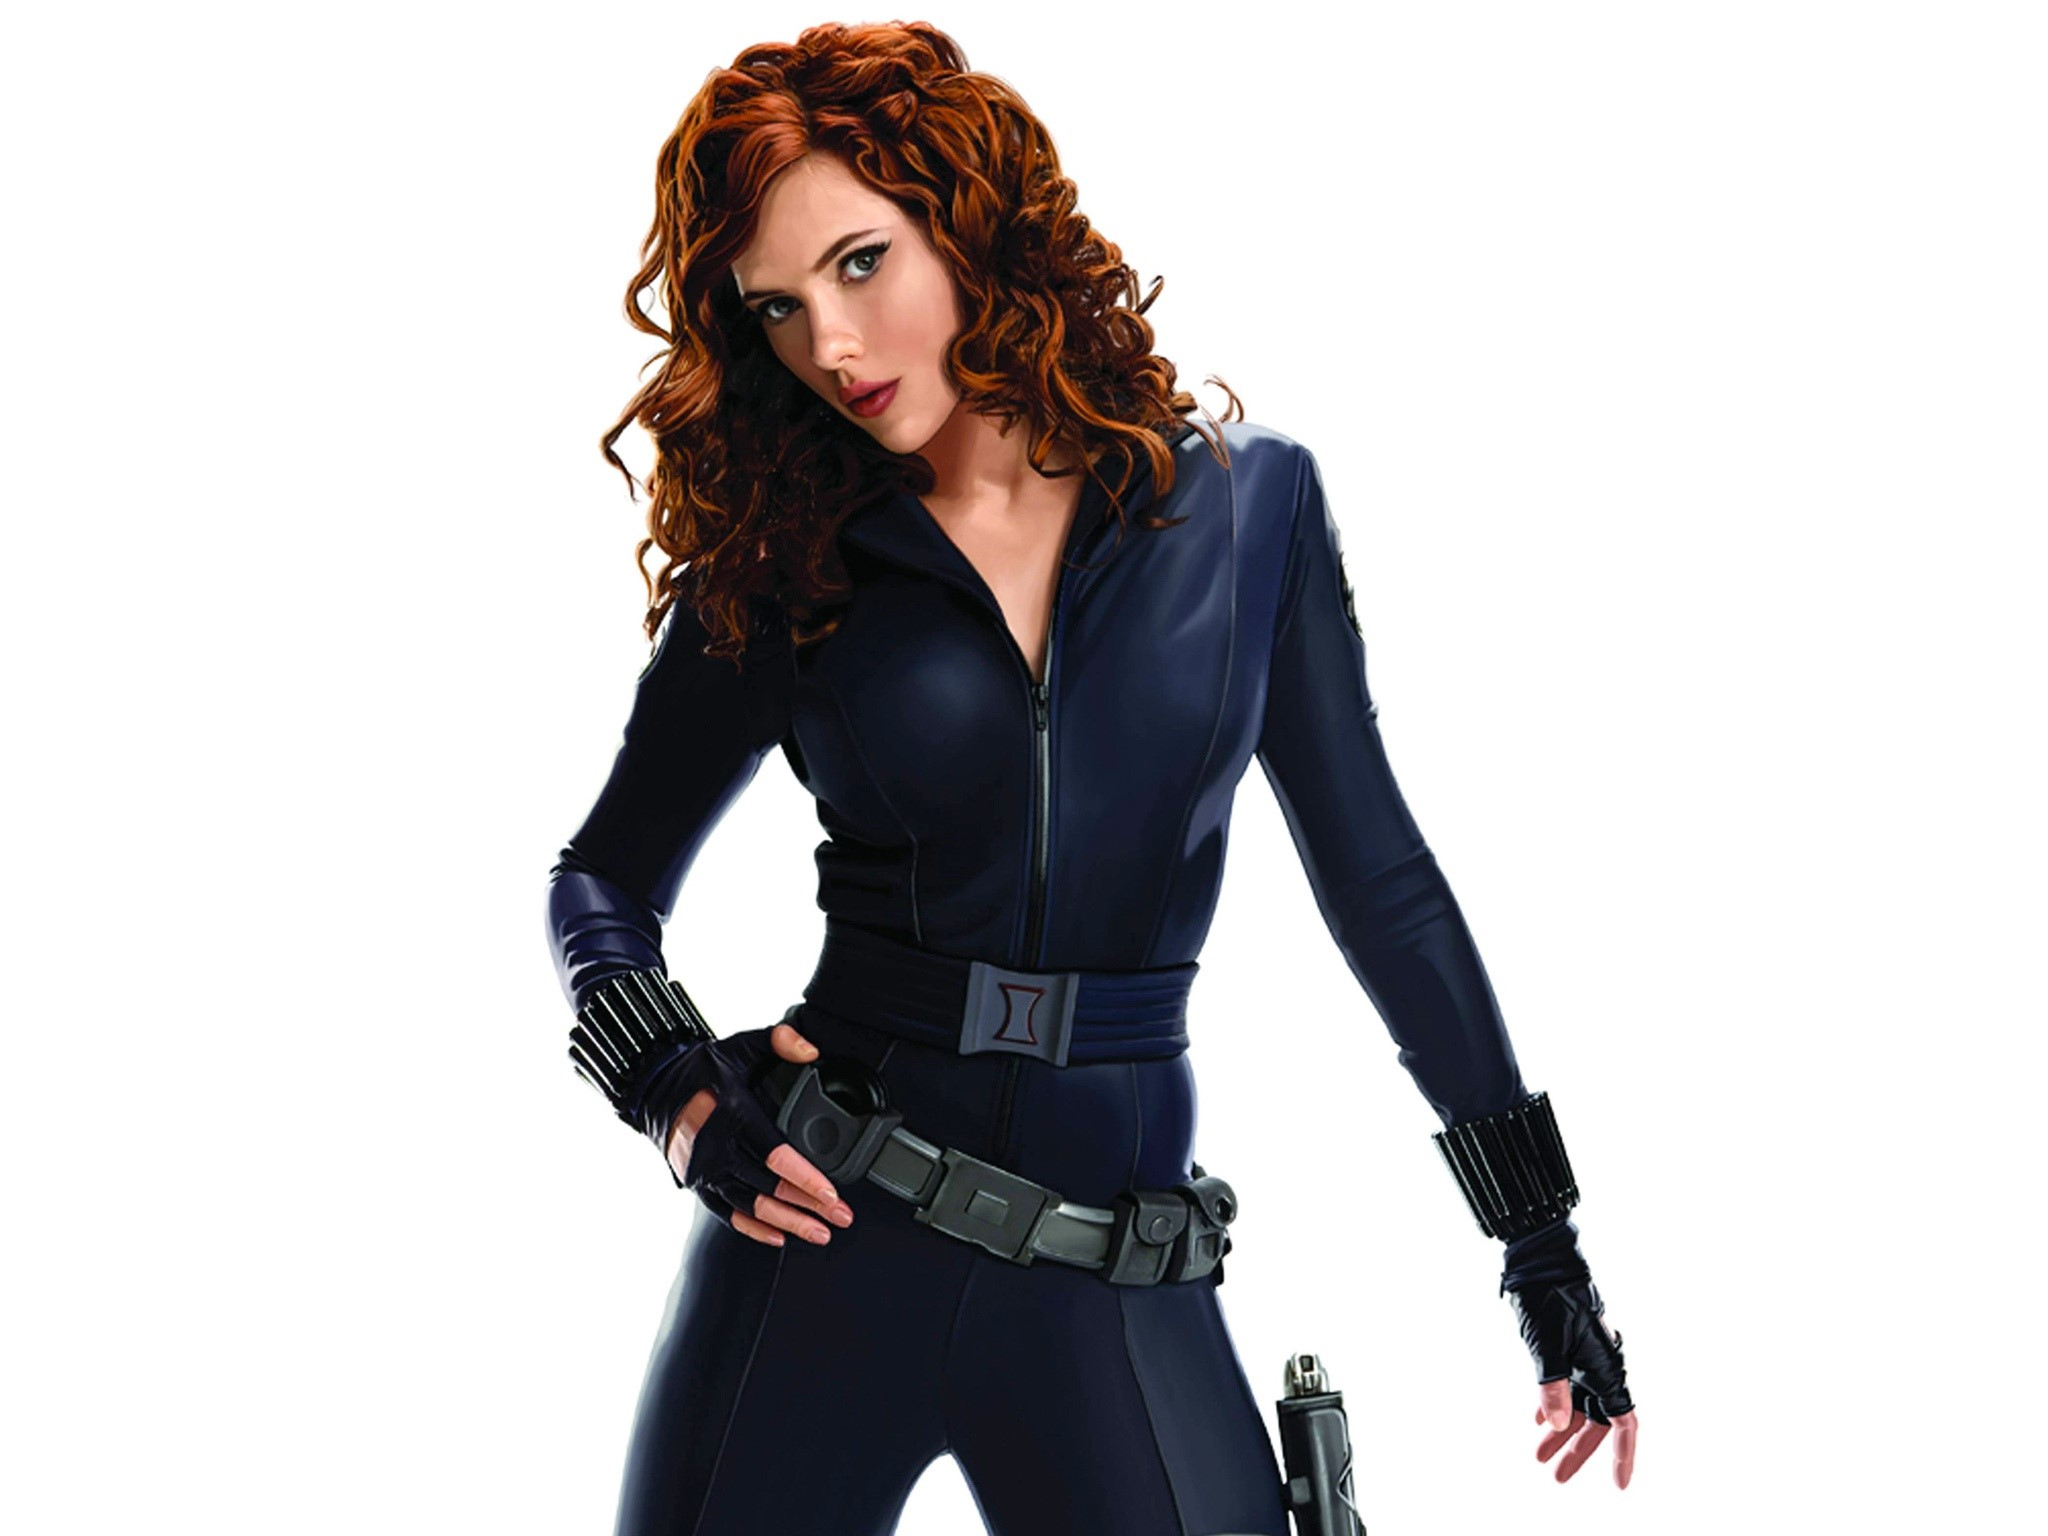 Wallpaper Scarlett Johansson como Black Widow Images